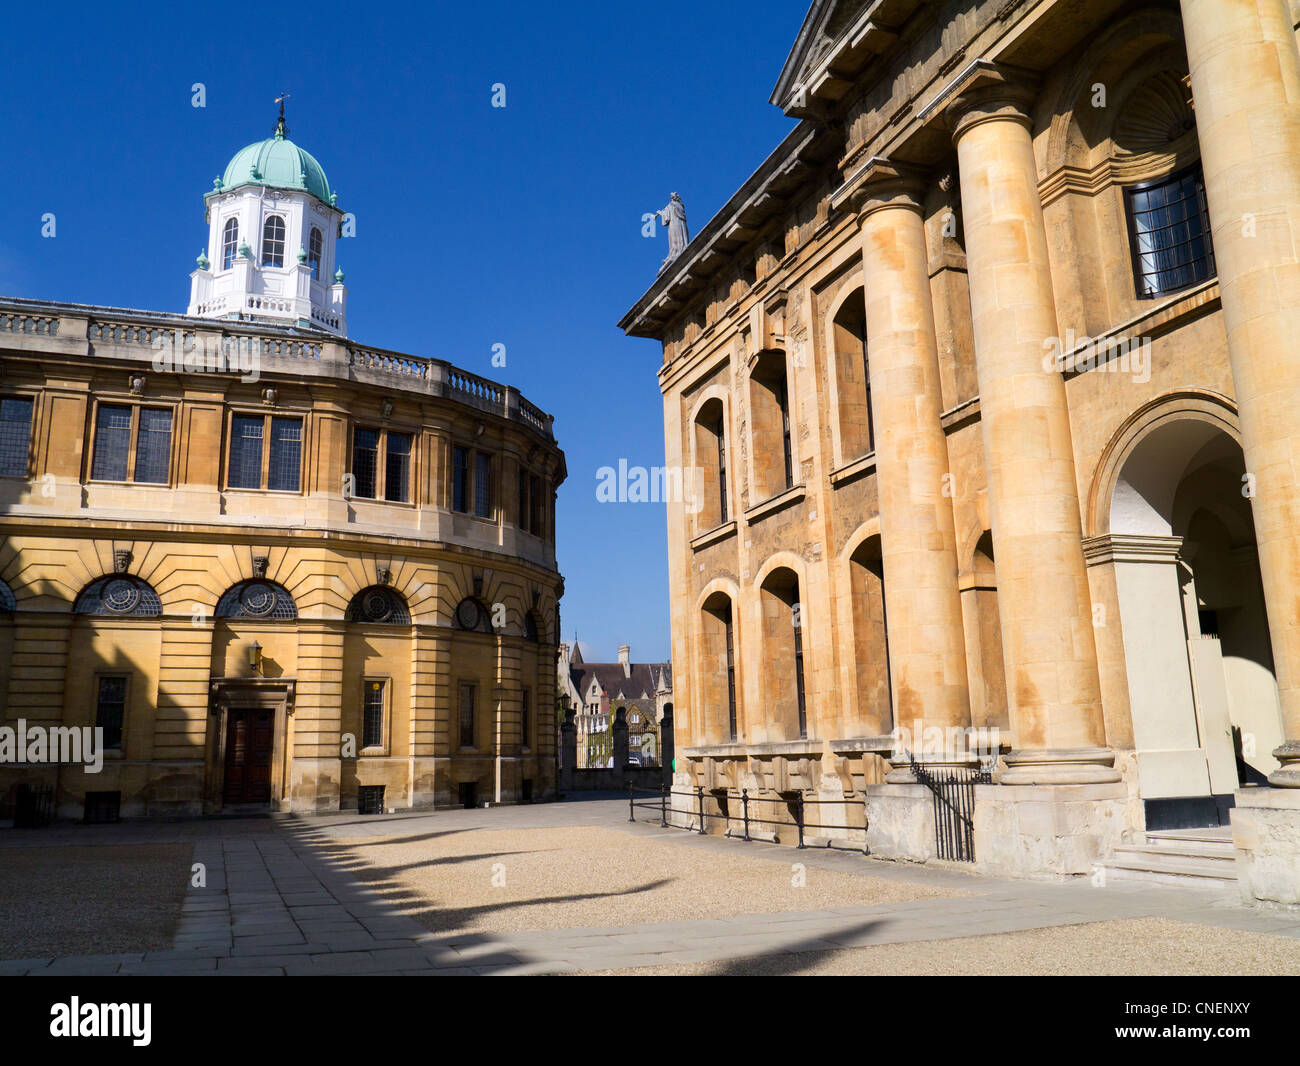 The Sheldonian Theatre and Clarendon Building, Oxford 4 - early spring morning Stock Photo